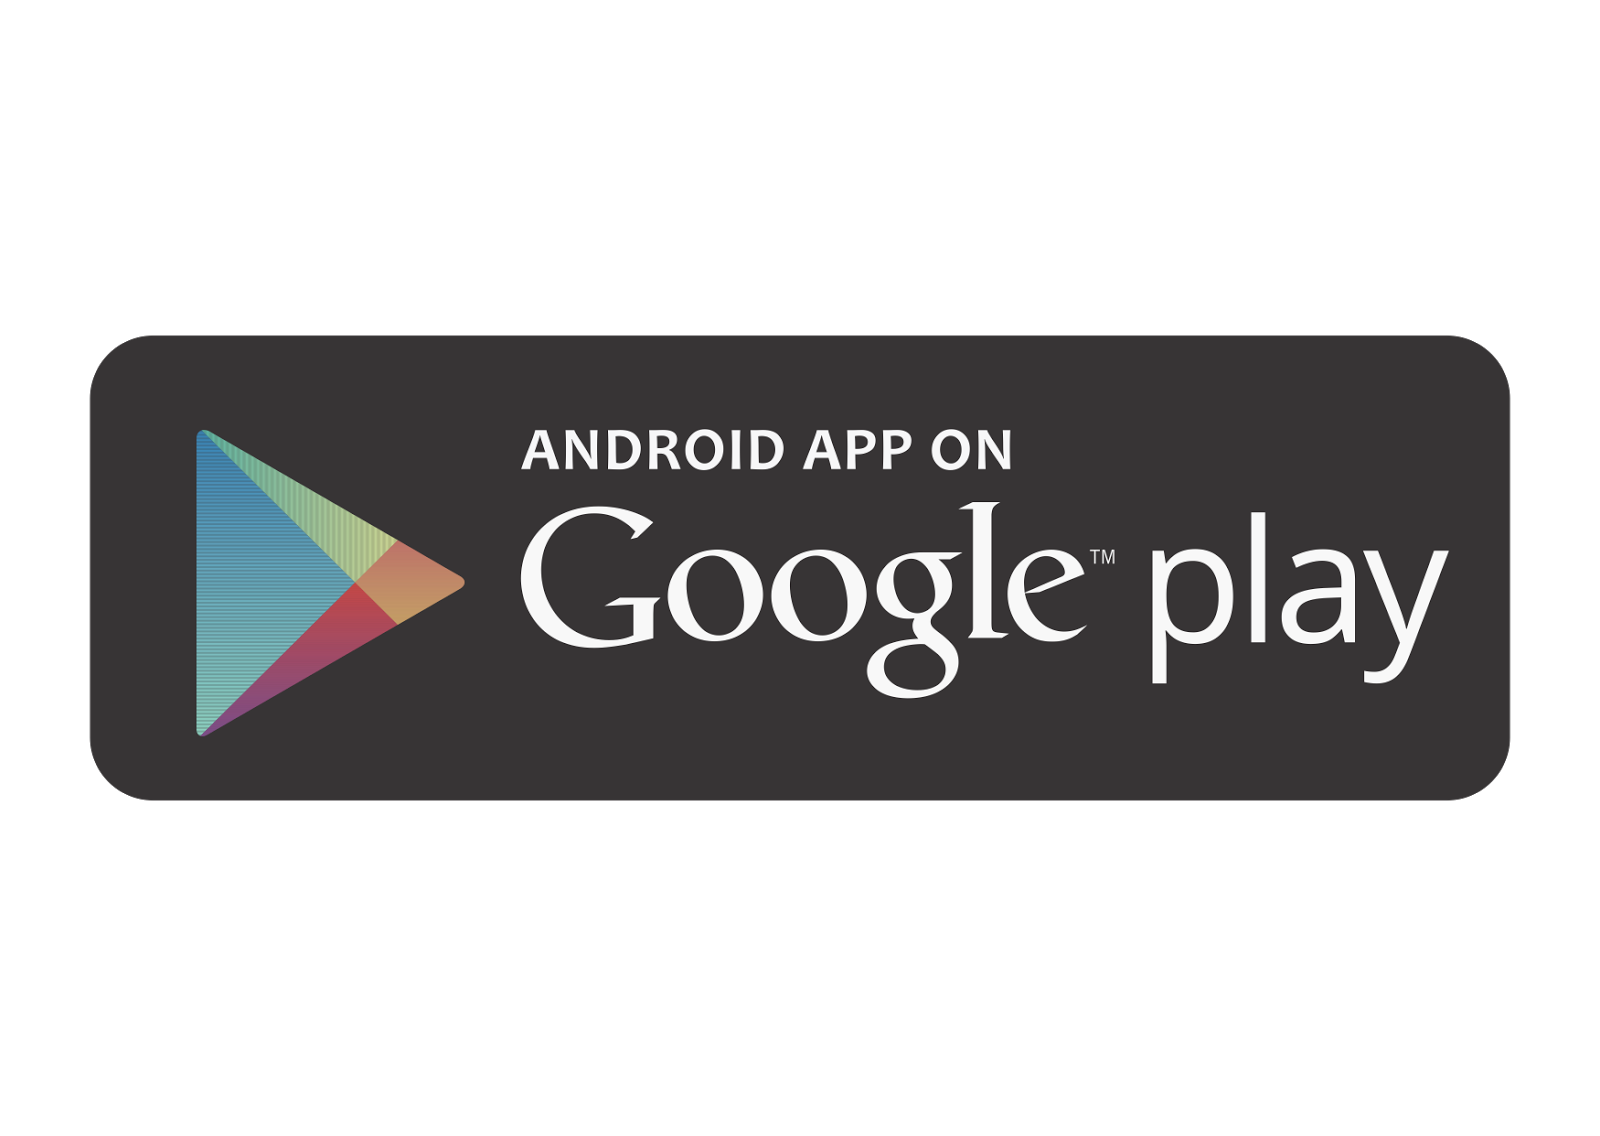 Android app on google play png. Logo vector download